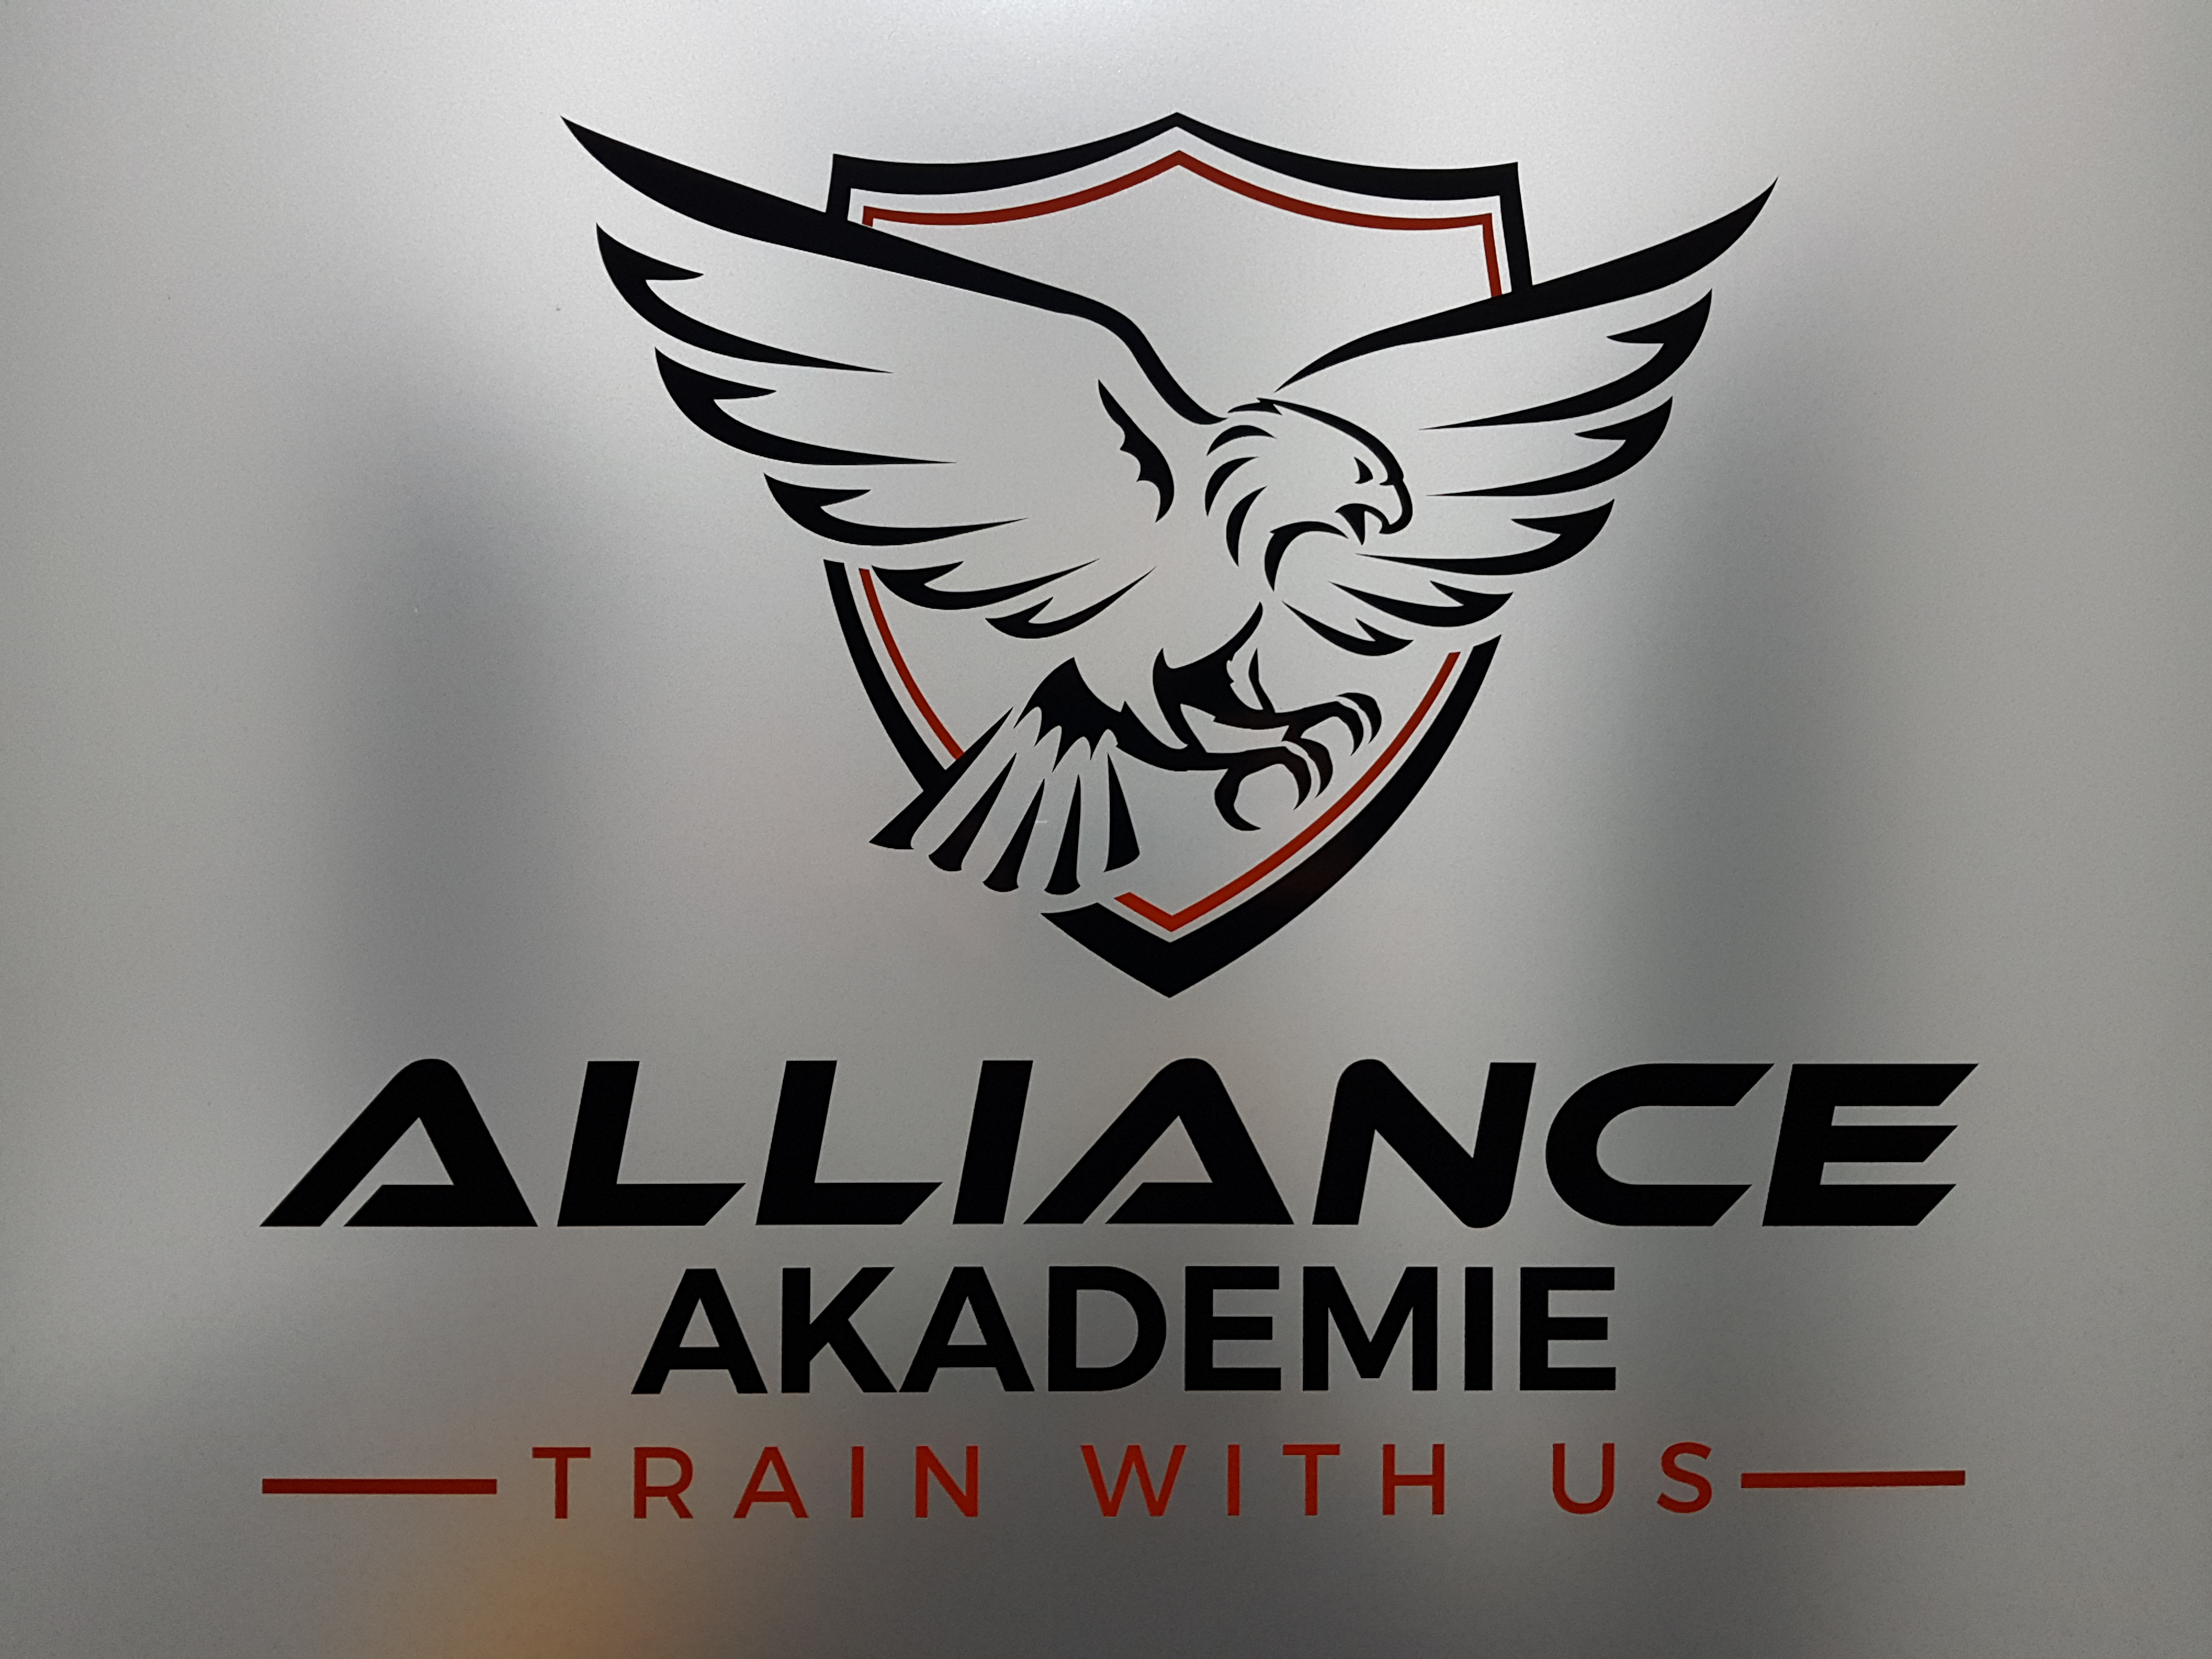 Train with us!